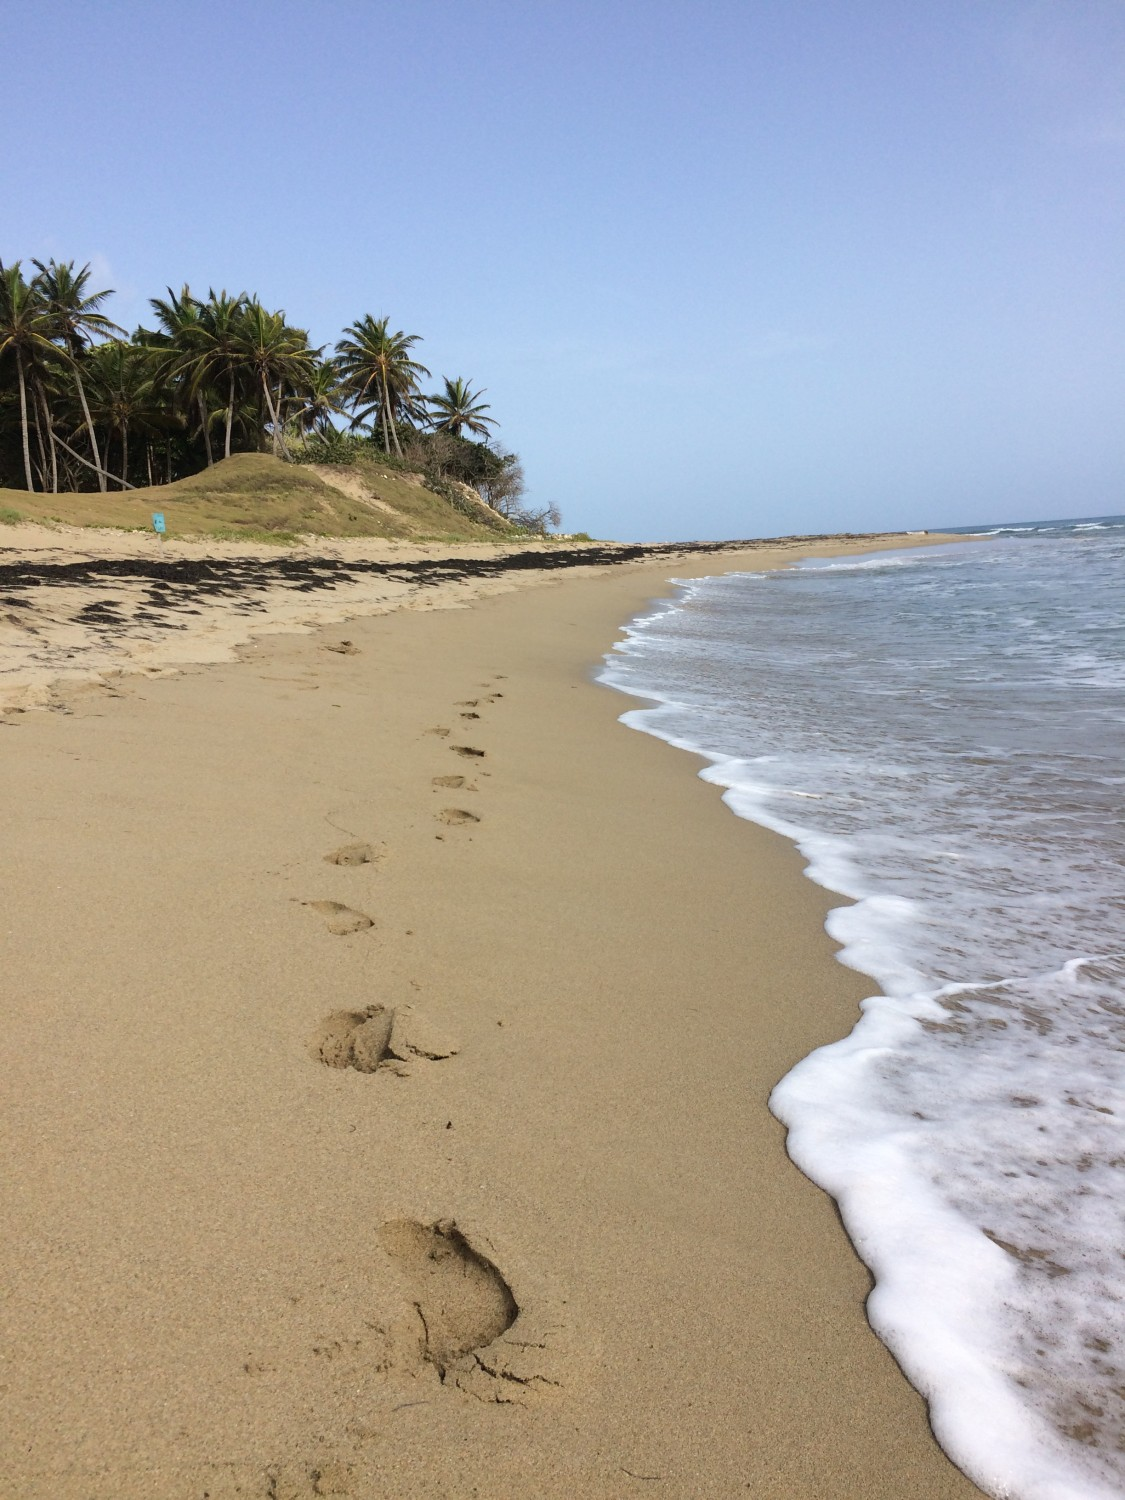 14 days in cabarete jillwiley adventure